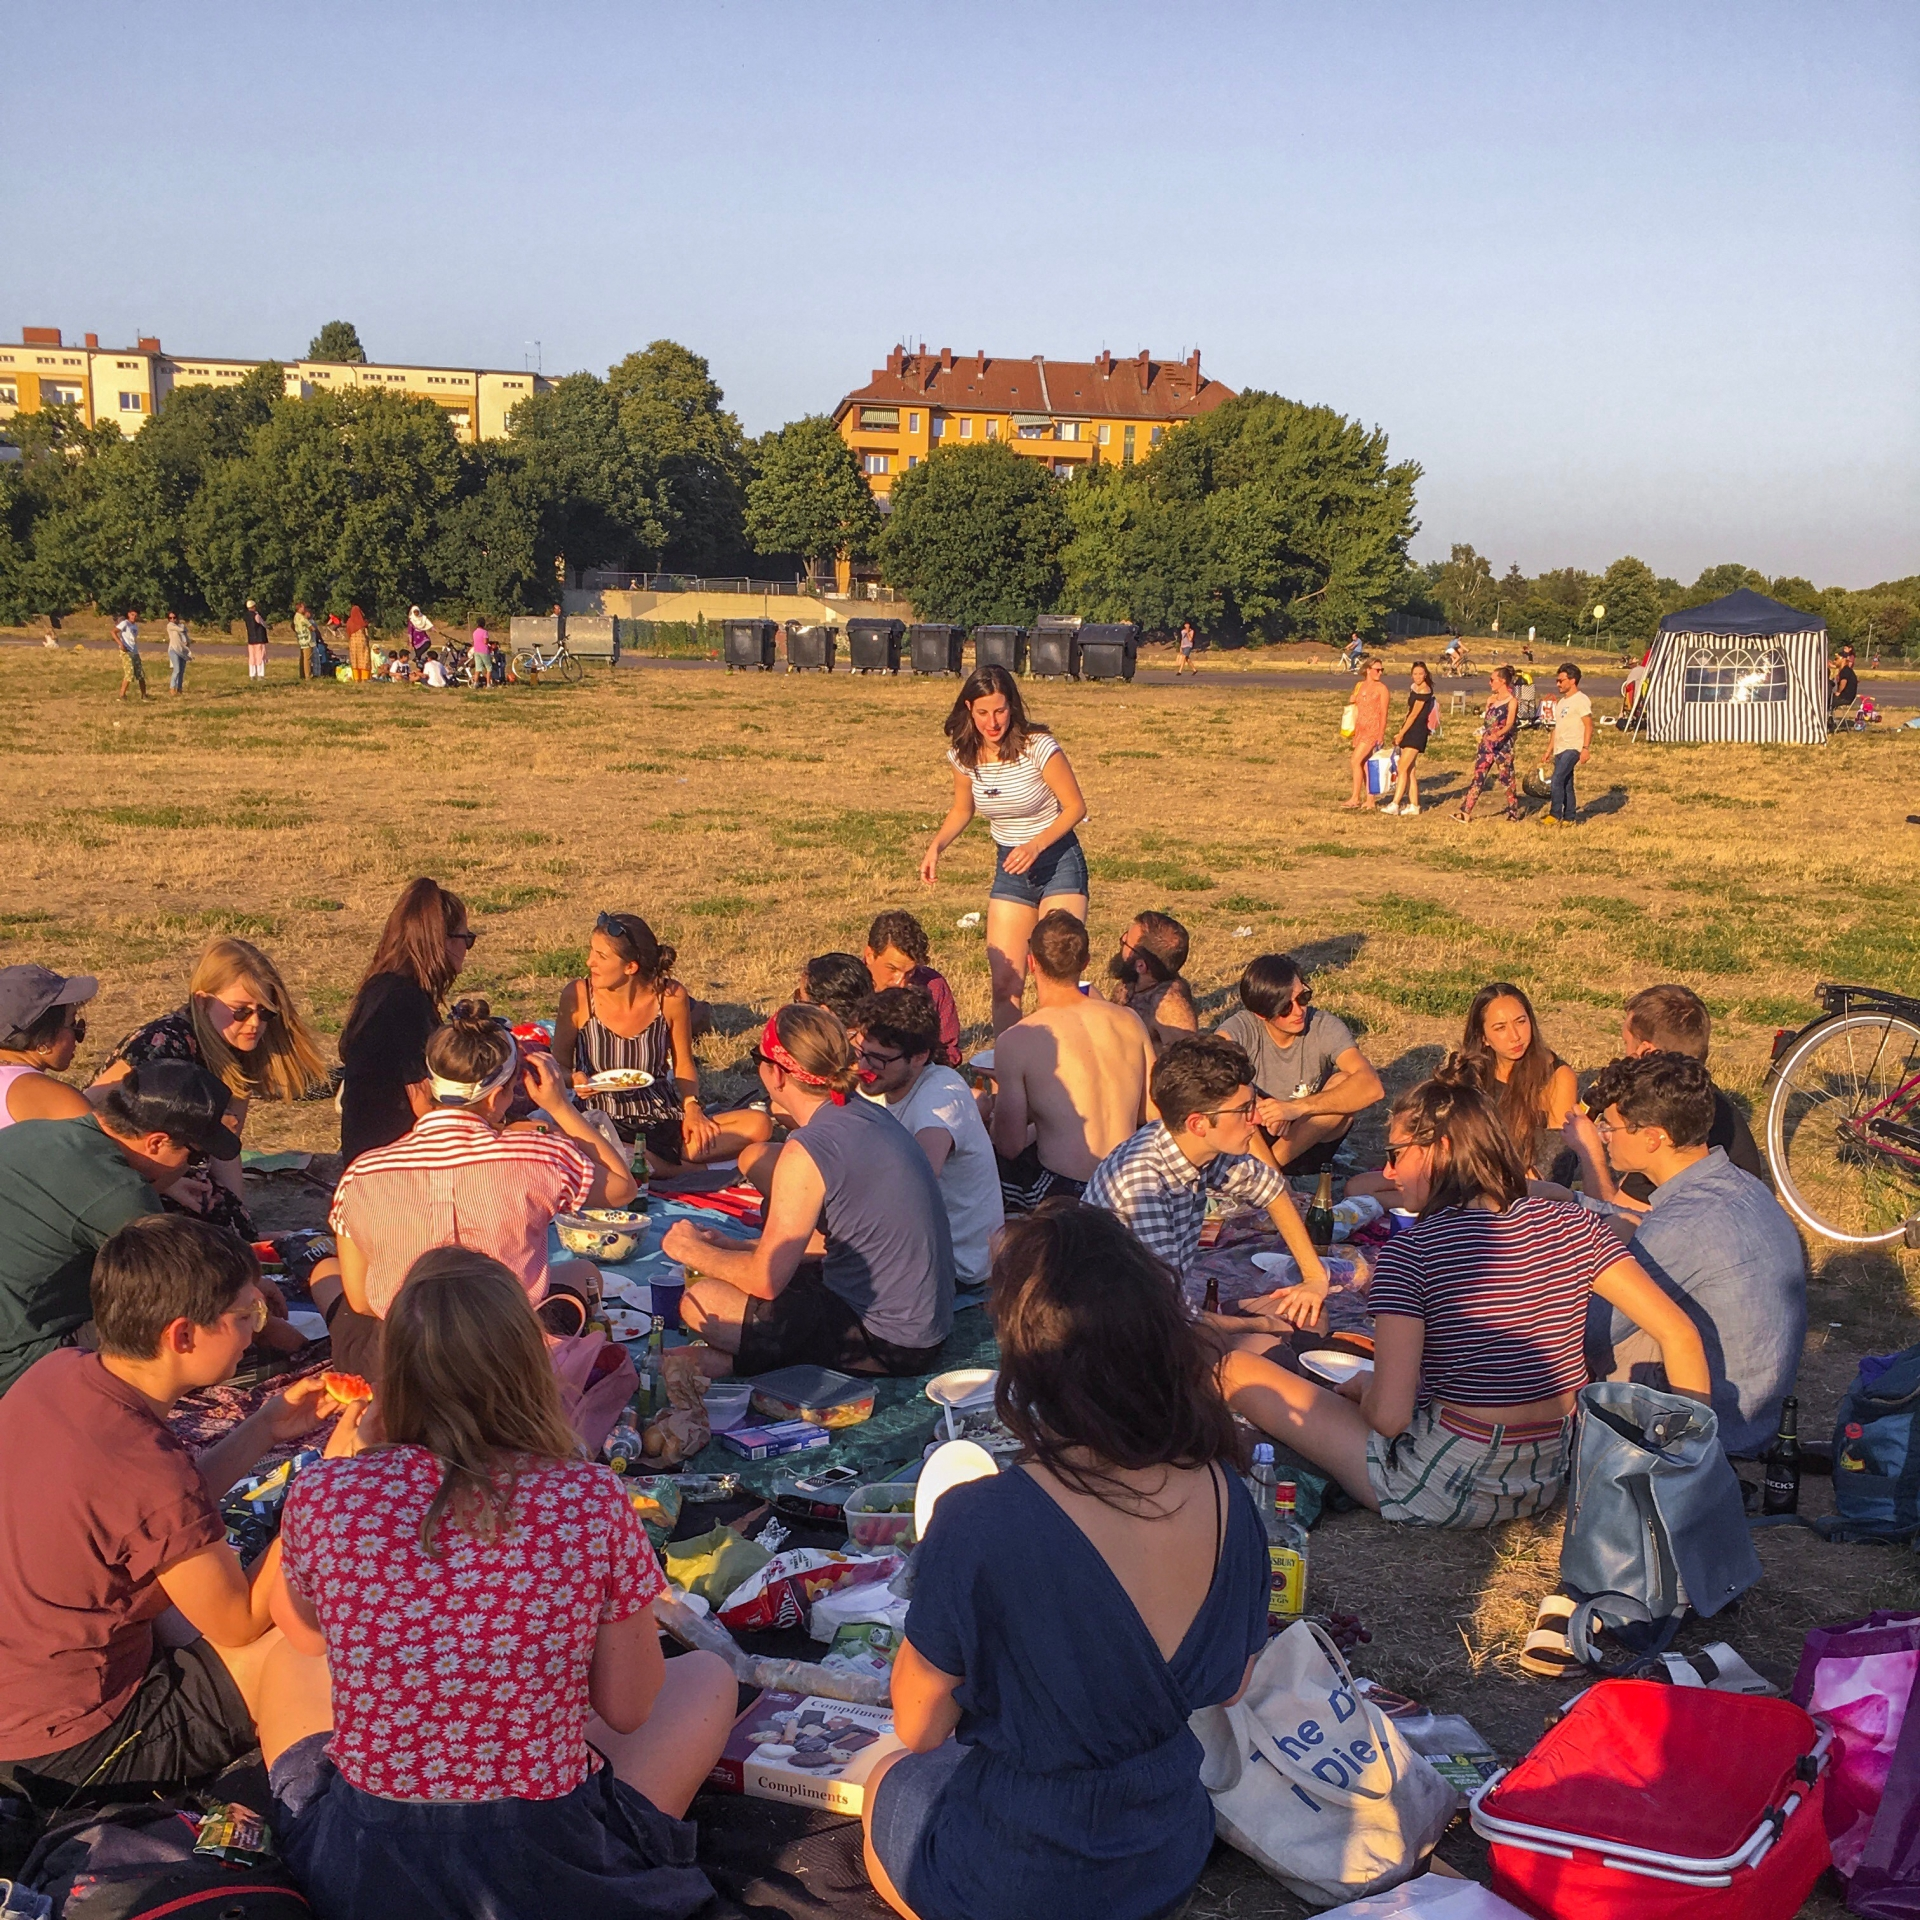 Picnic at Tempelhofer Feld in Berlin